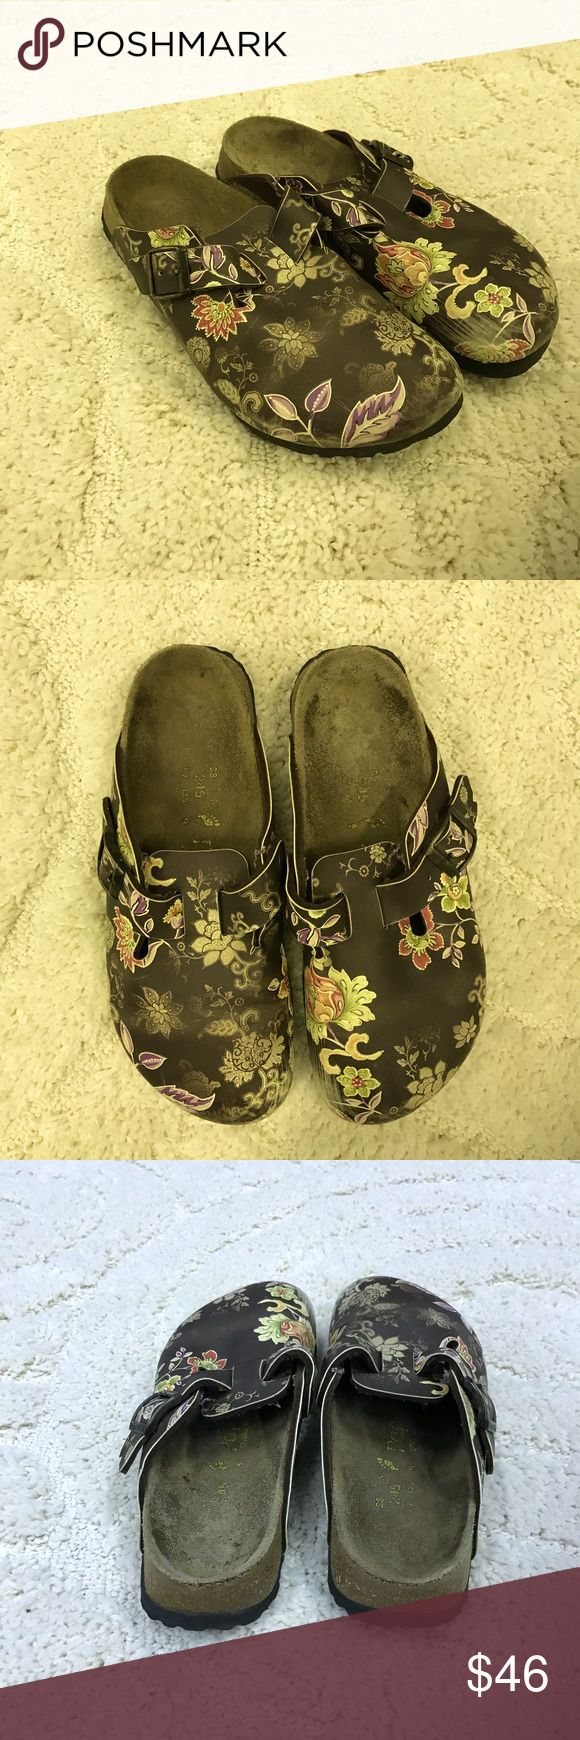 Birkenstock Women's 7 Mules & Clogs Size L7 M5,   Top 10% Seller, 💯 authentic, 🚀 ships next day! No trades, but will consider all offers. Birkenstock Shoes Mules & Clogs